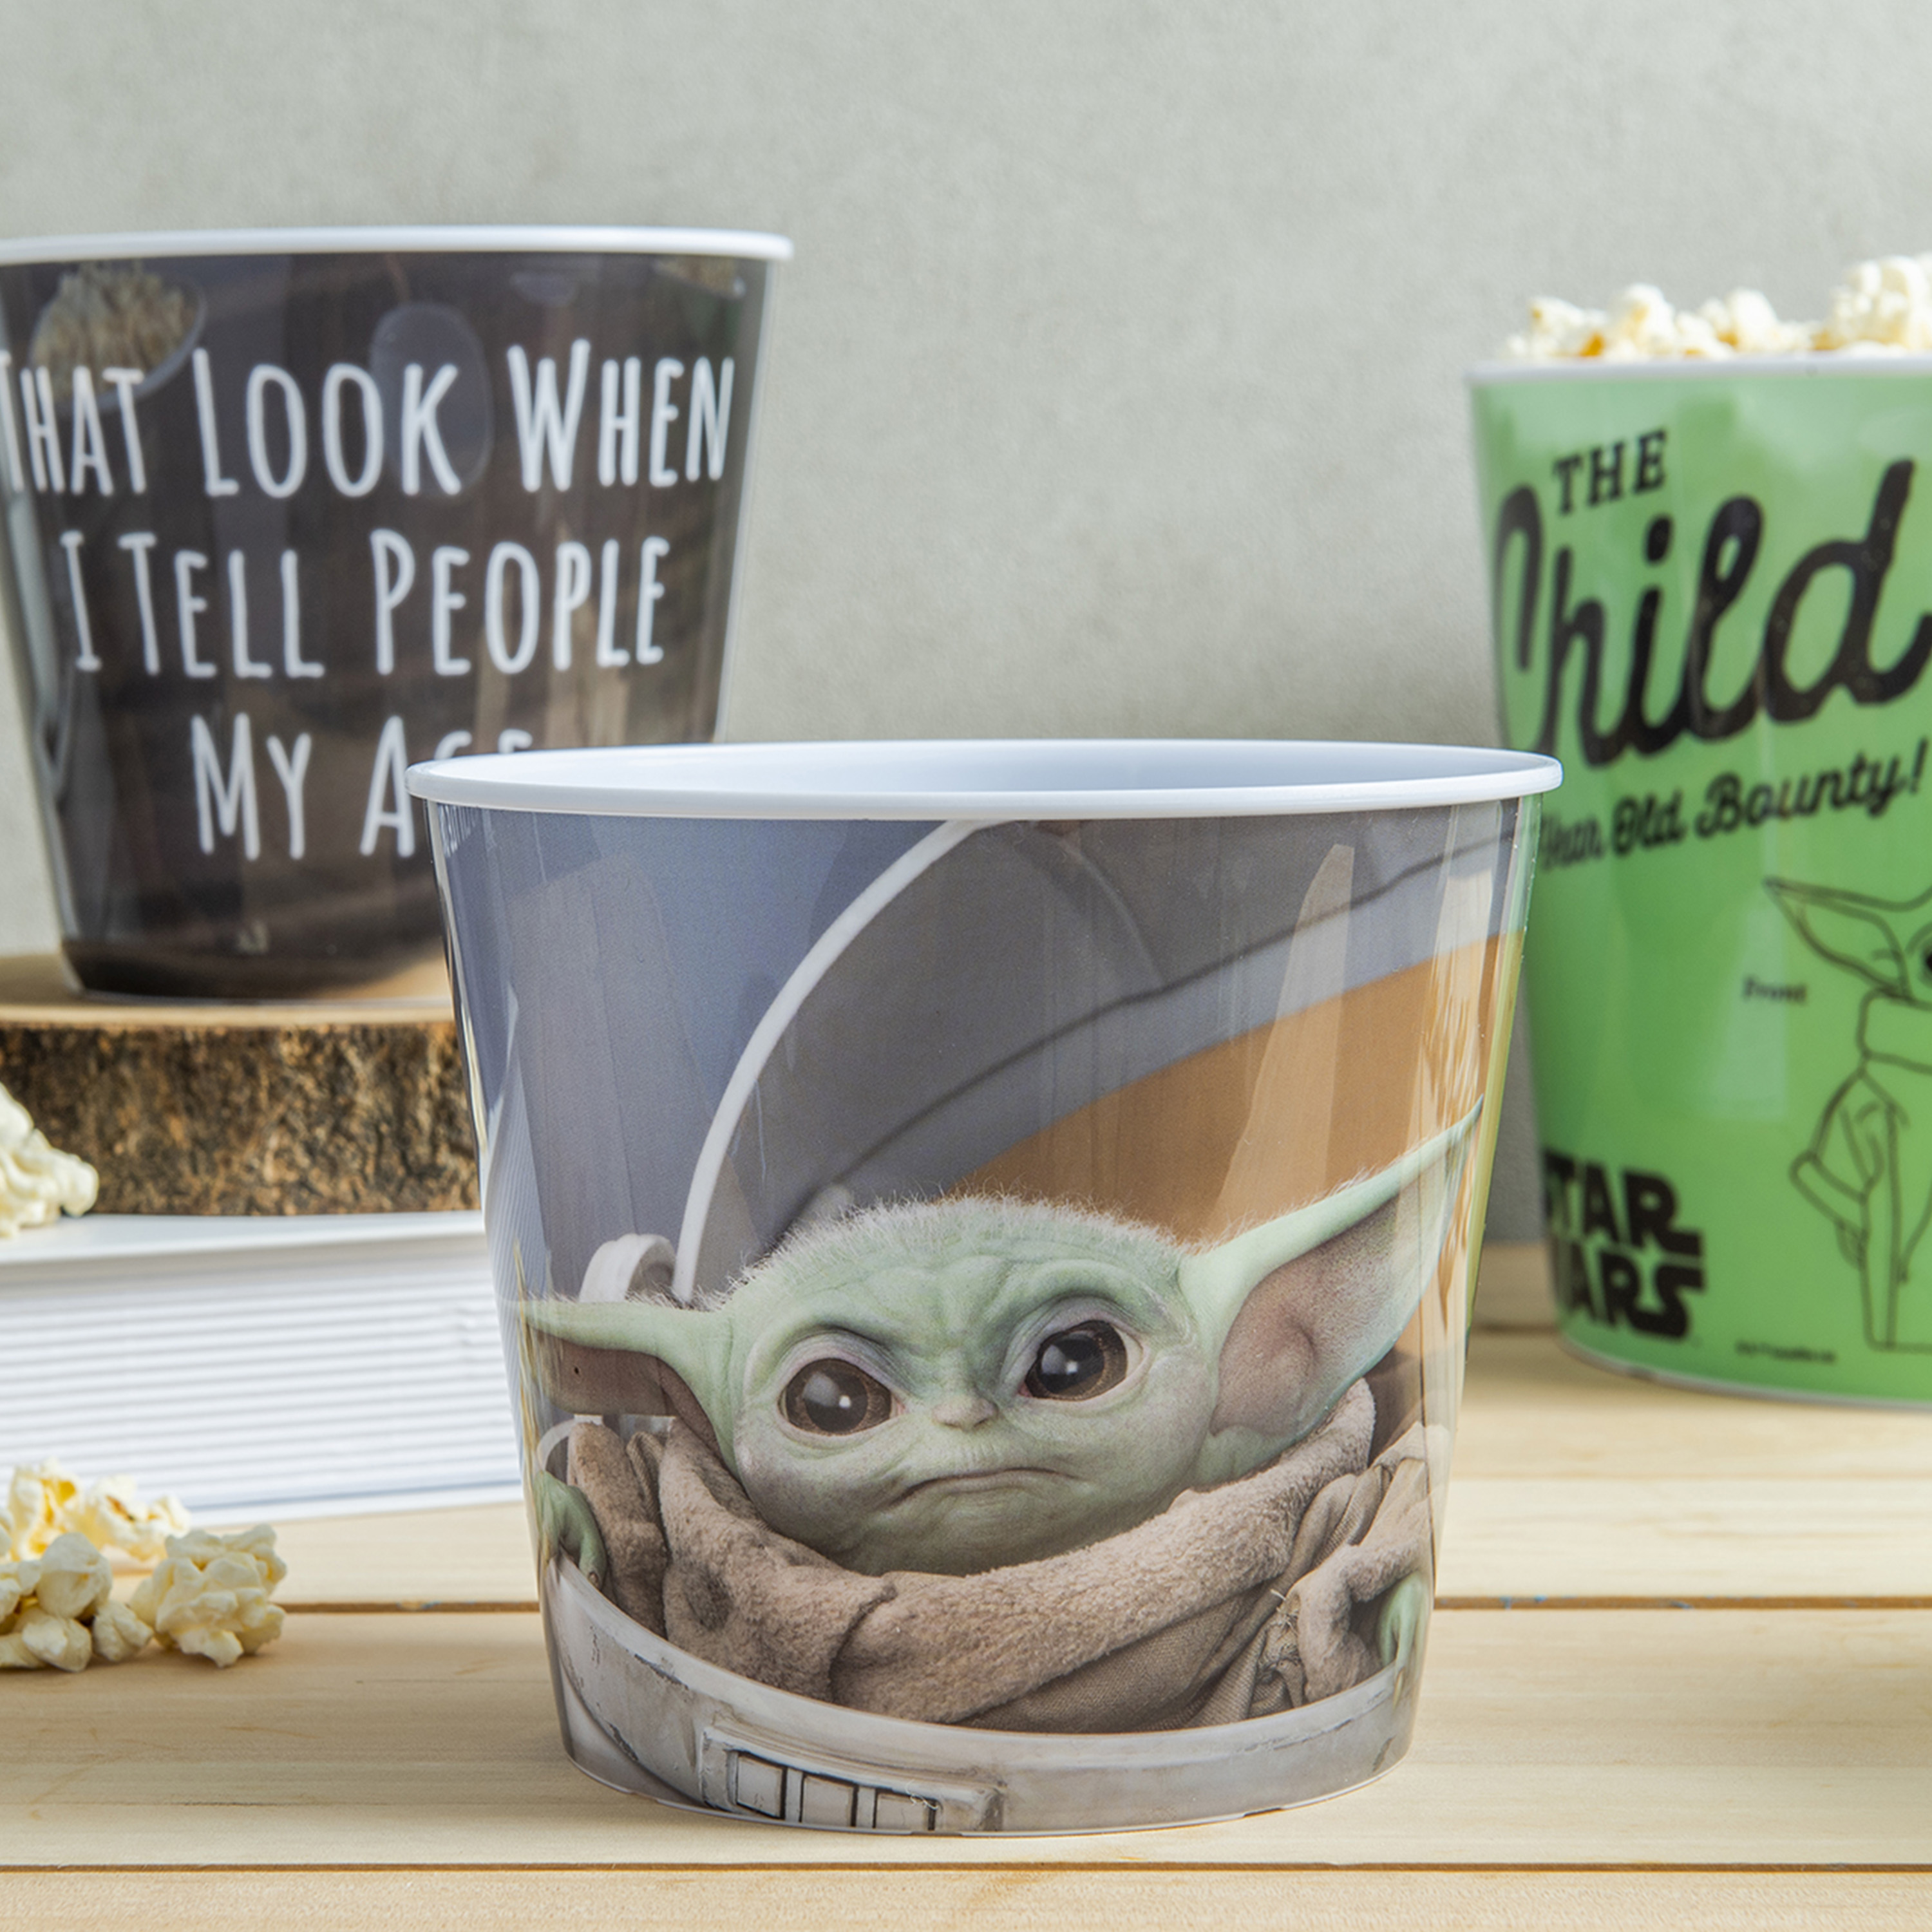 Star Wars: The Mandalorian Plastic Popcorn Container and Bowls, The Child (Baby Yoda), 5-piece set slideshow image 5